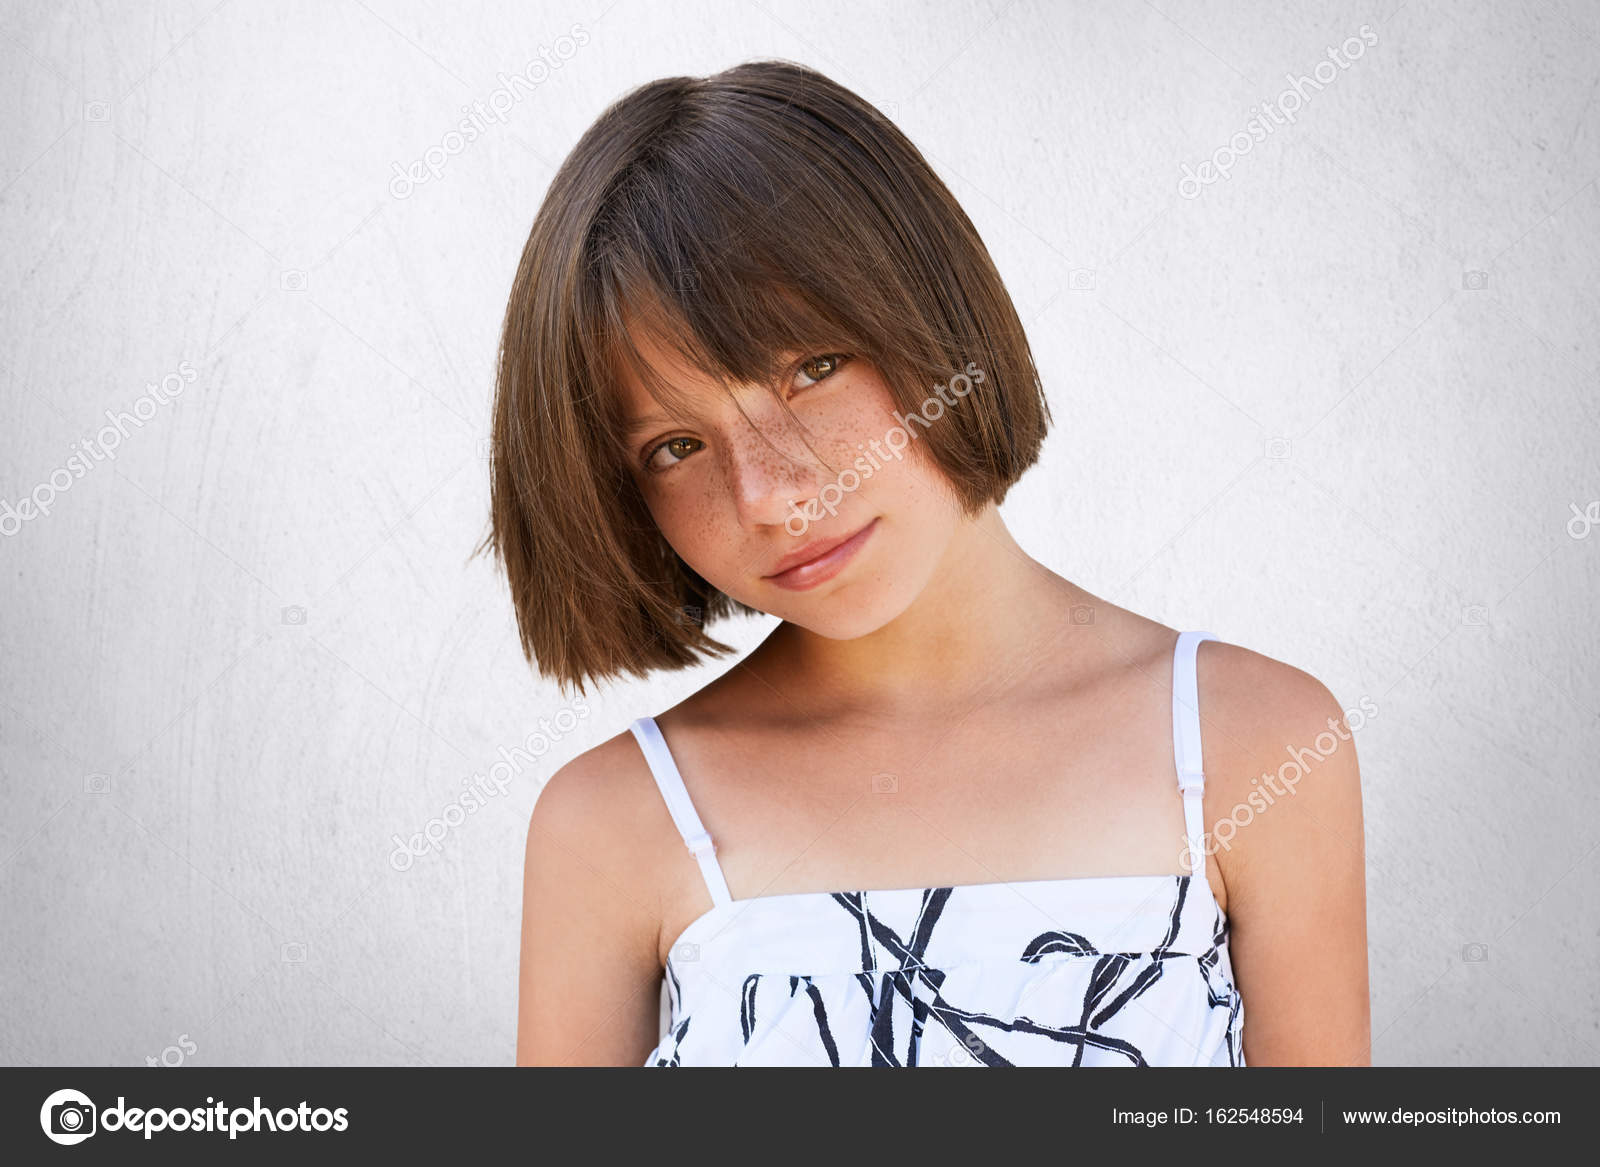 Pretty Little Girl With Freckles Dark Eyes And Short Hairstyle